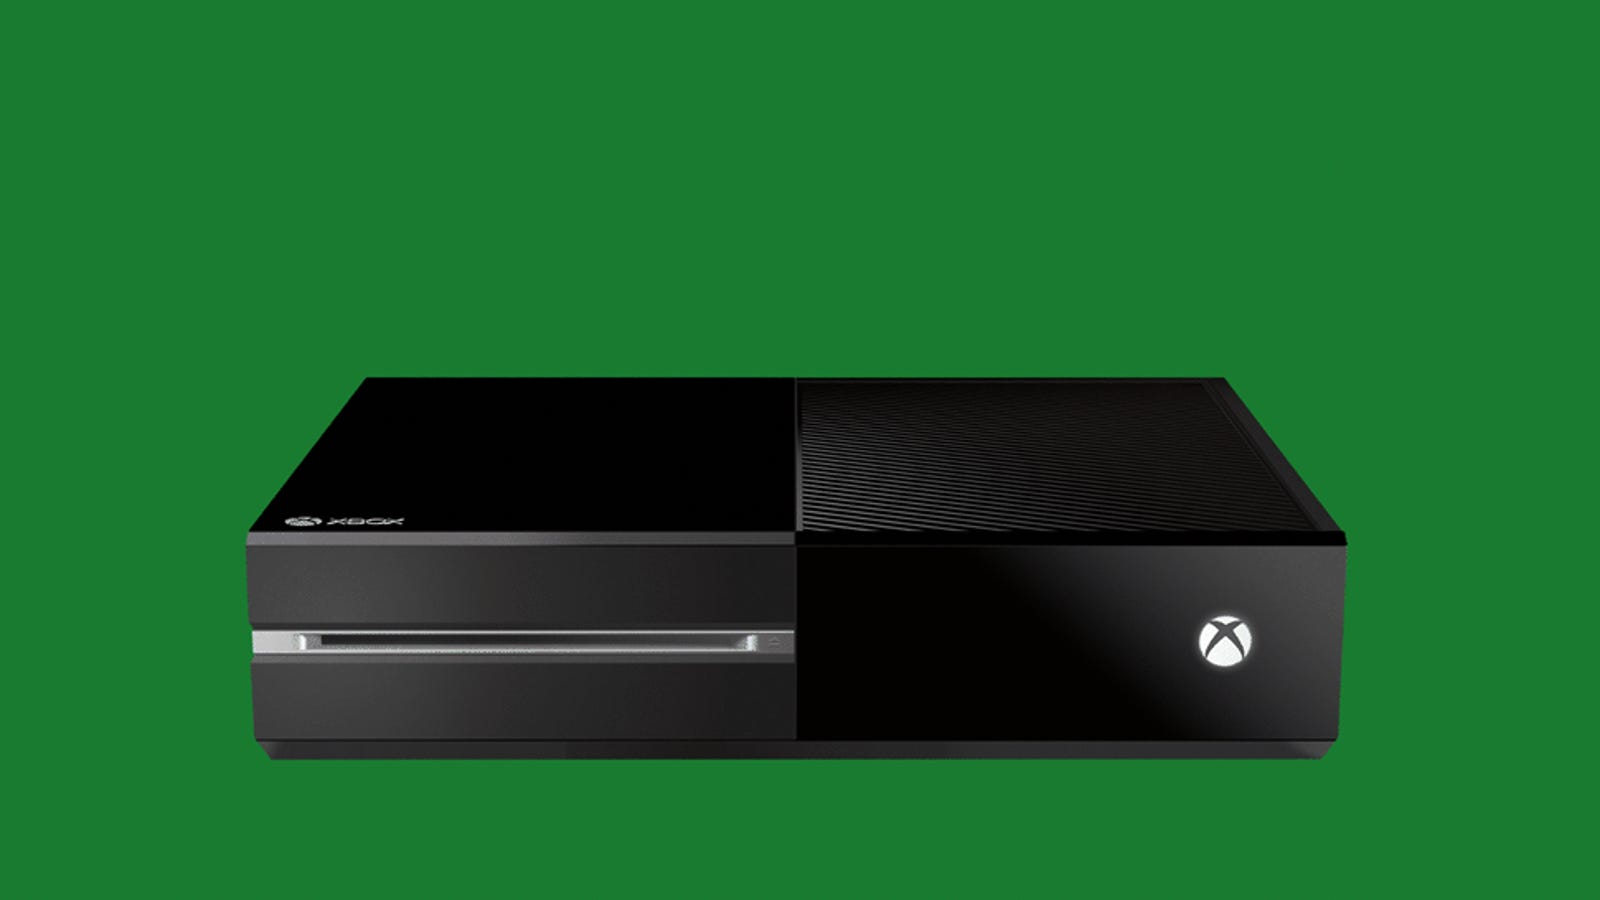 Your Xbox One And PS4 Can Hook Up